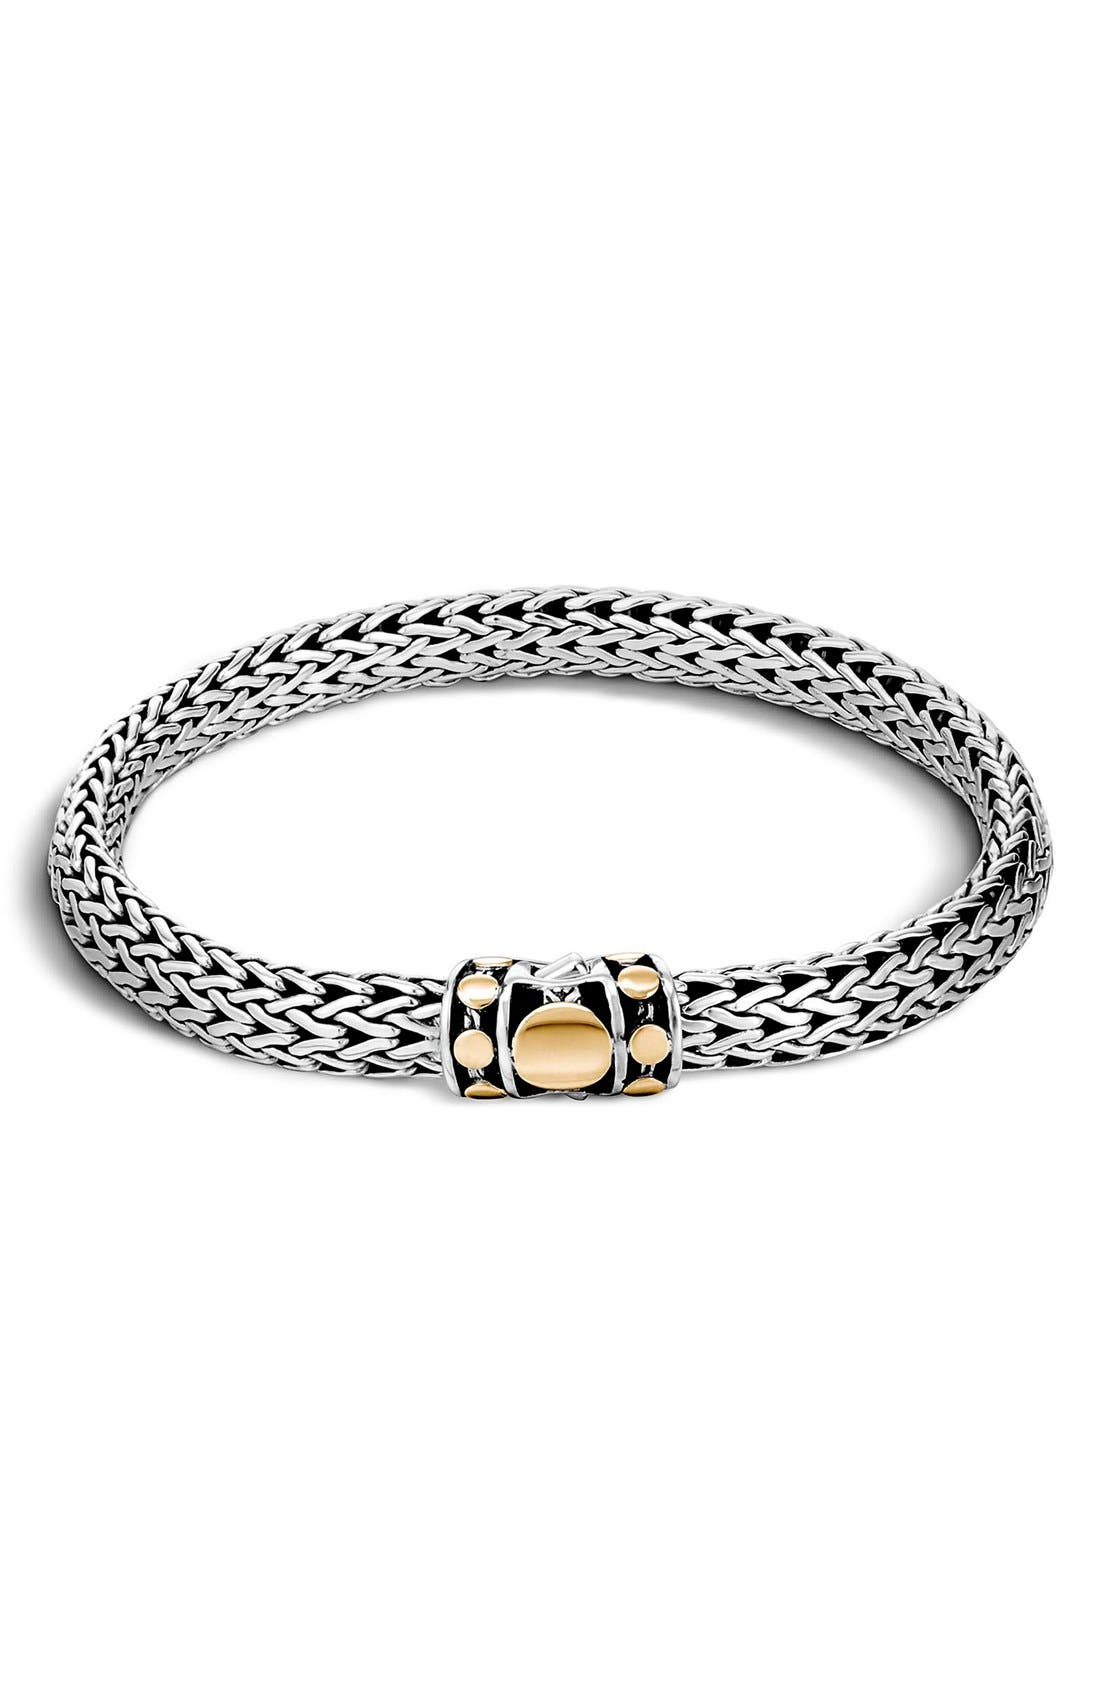 Dot 6.5mm Bracelet,                             Main thumbnail 1, color,                             STERLING SILVER - GOLD